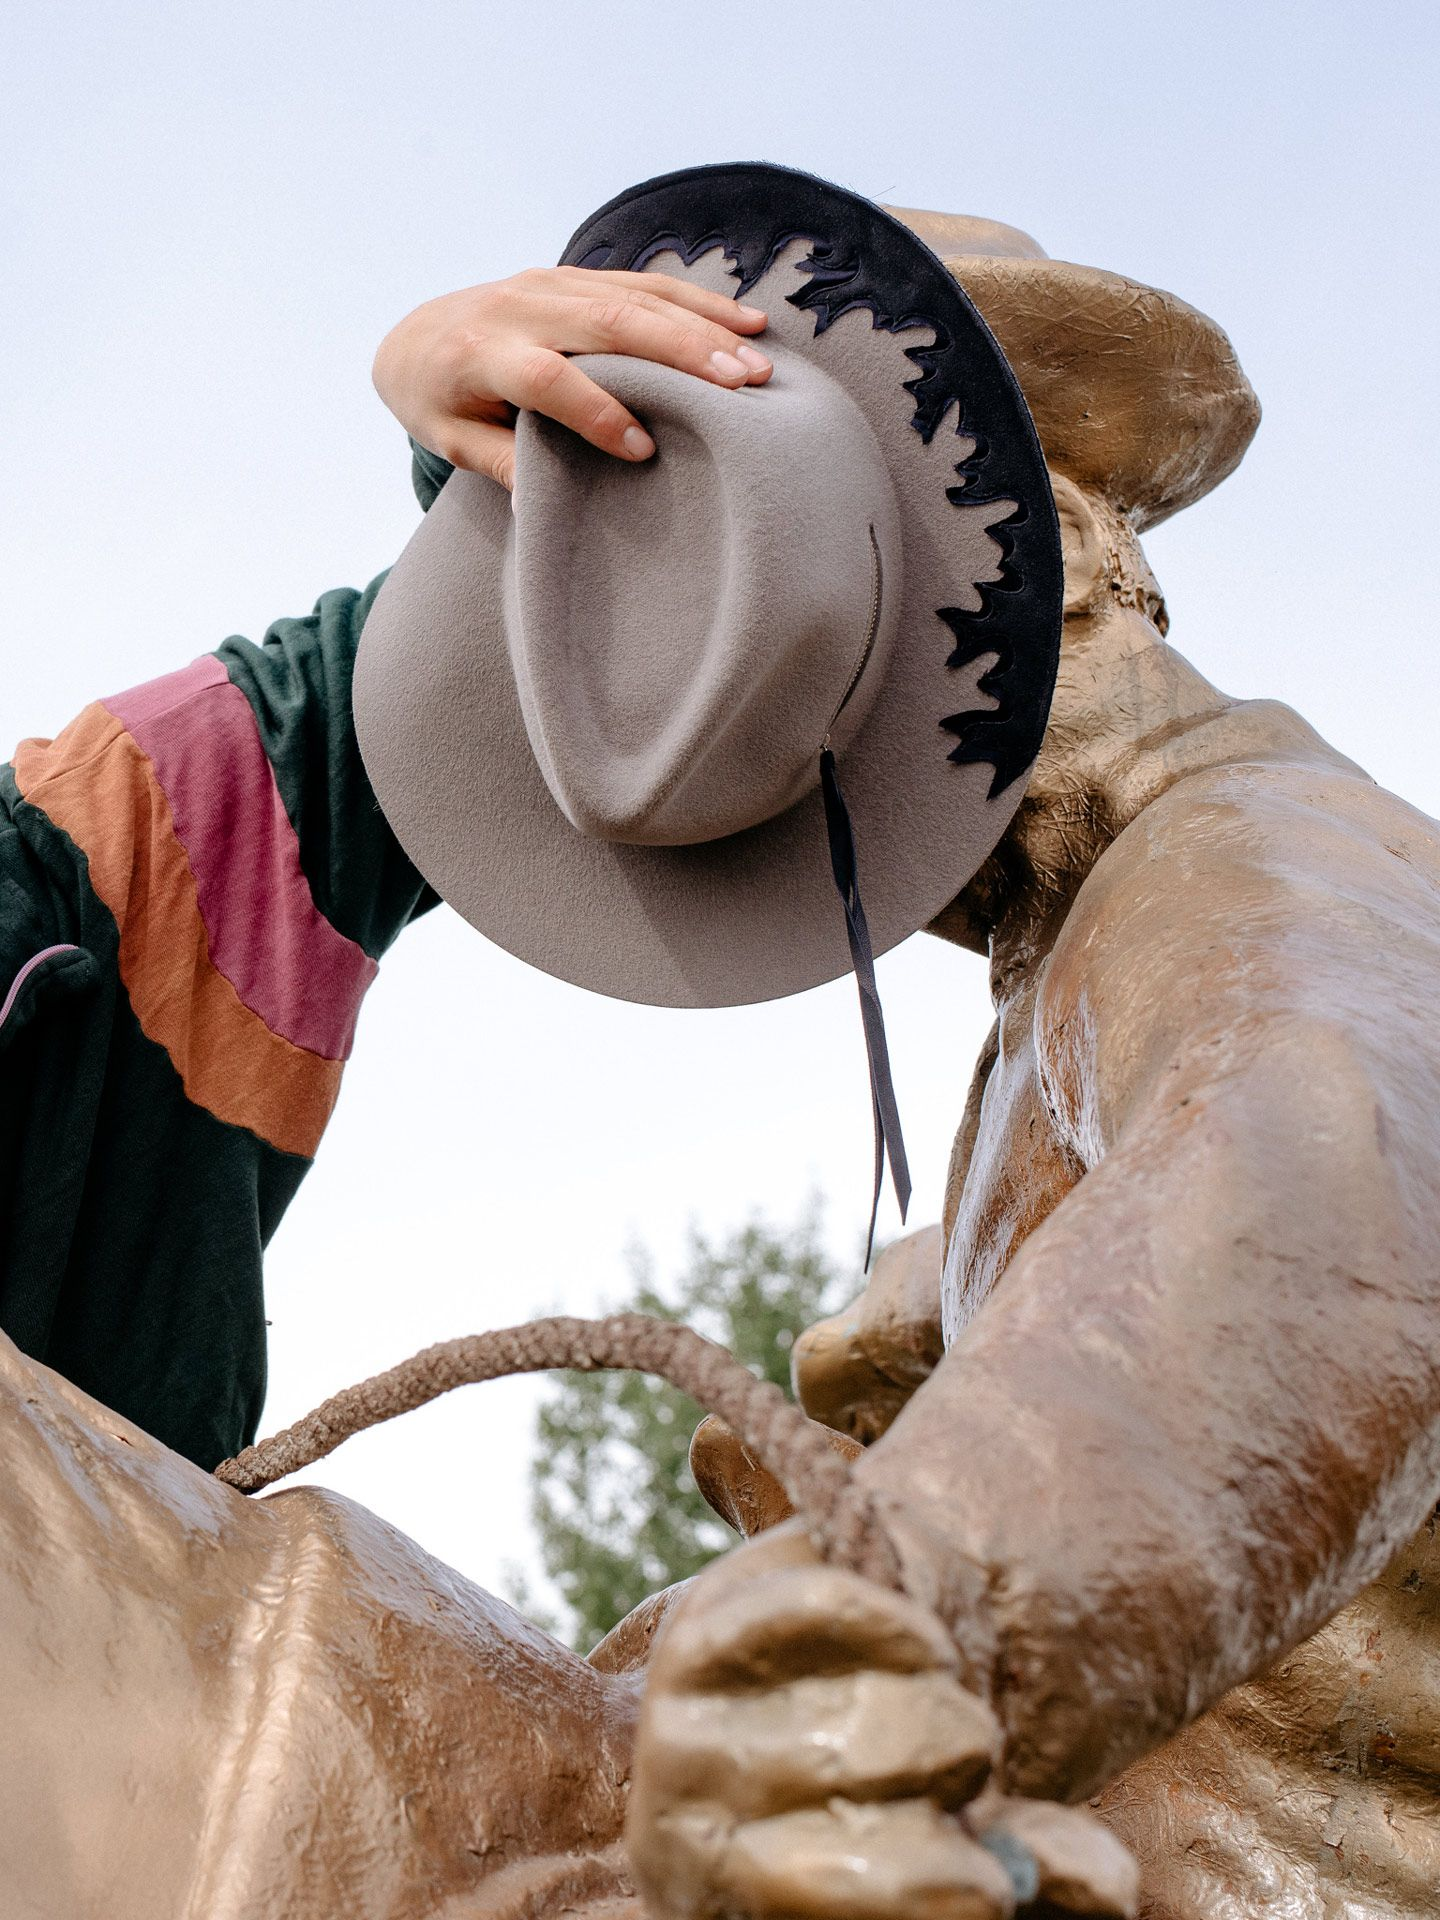 cowboy hat being posed on statue by Alexi Hobbs for Larose Paris in St-Tite